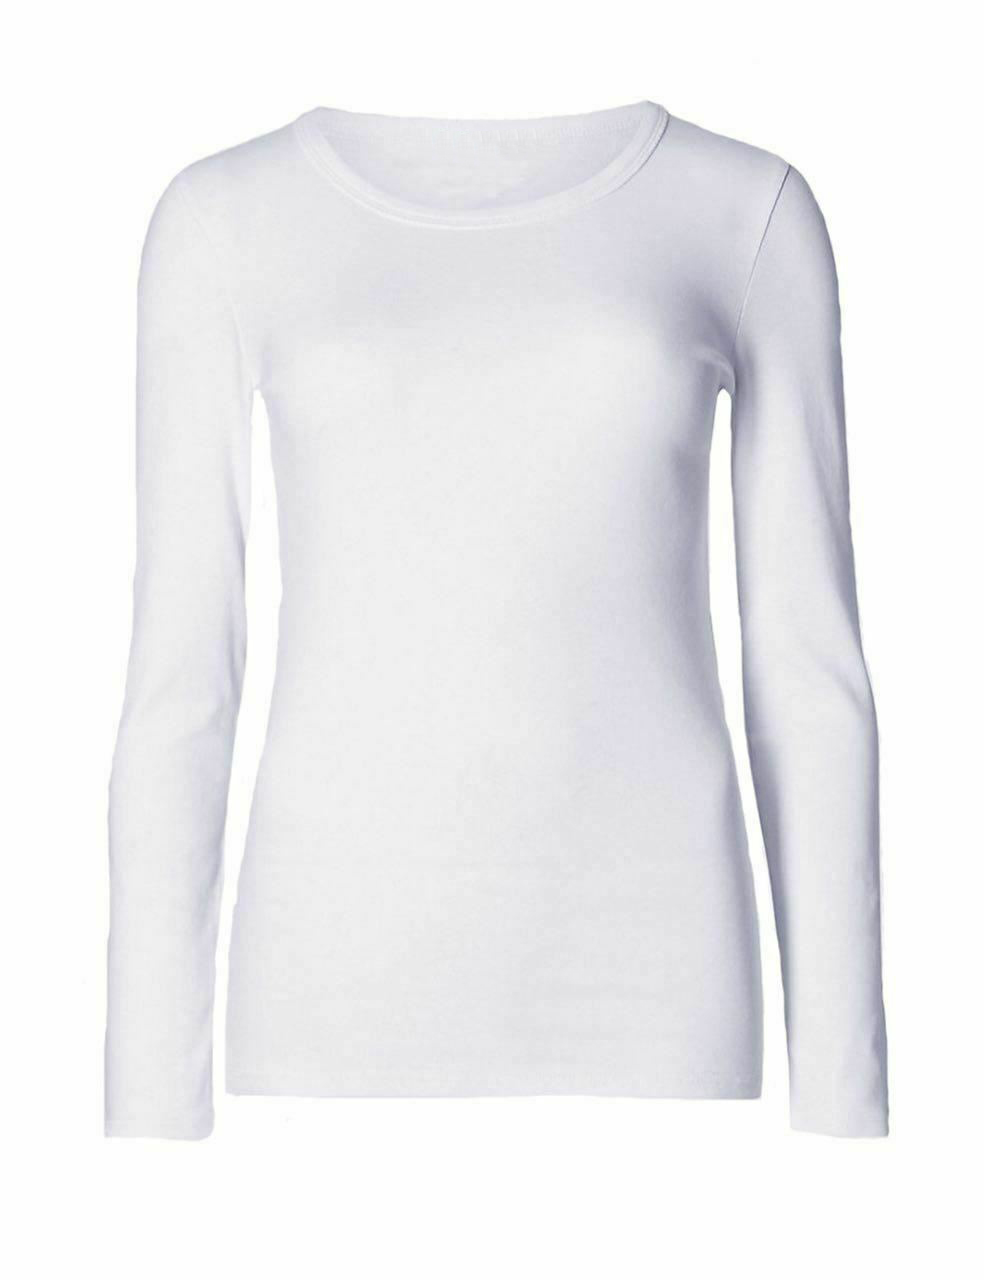 Ladies Plain White Long Sleeve Round Neck Stretch T-Shirt